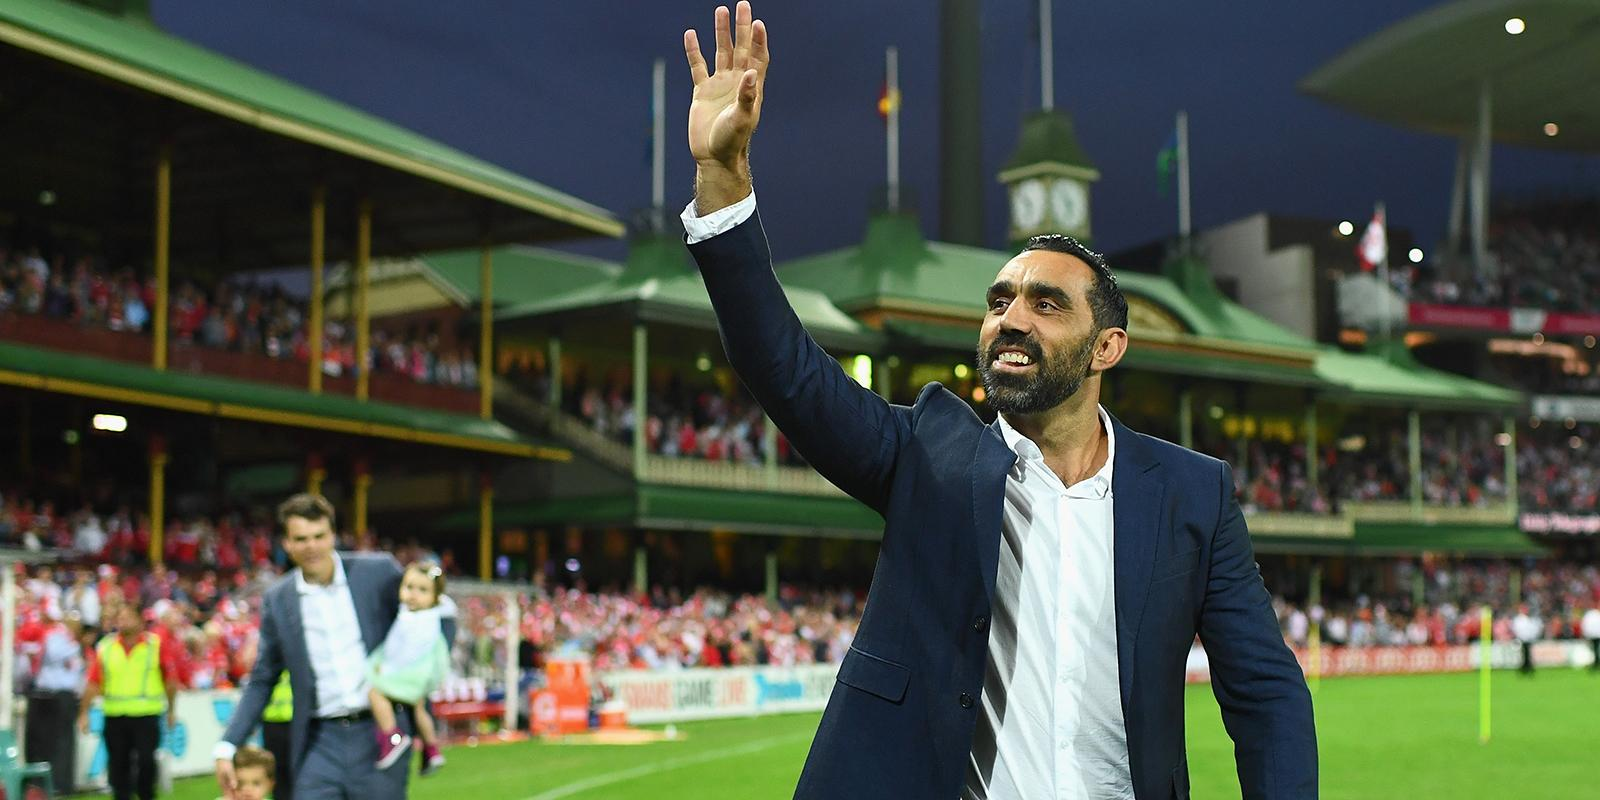 Adam Goodes says goodbye to footy